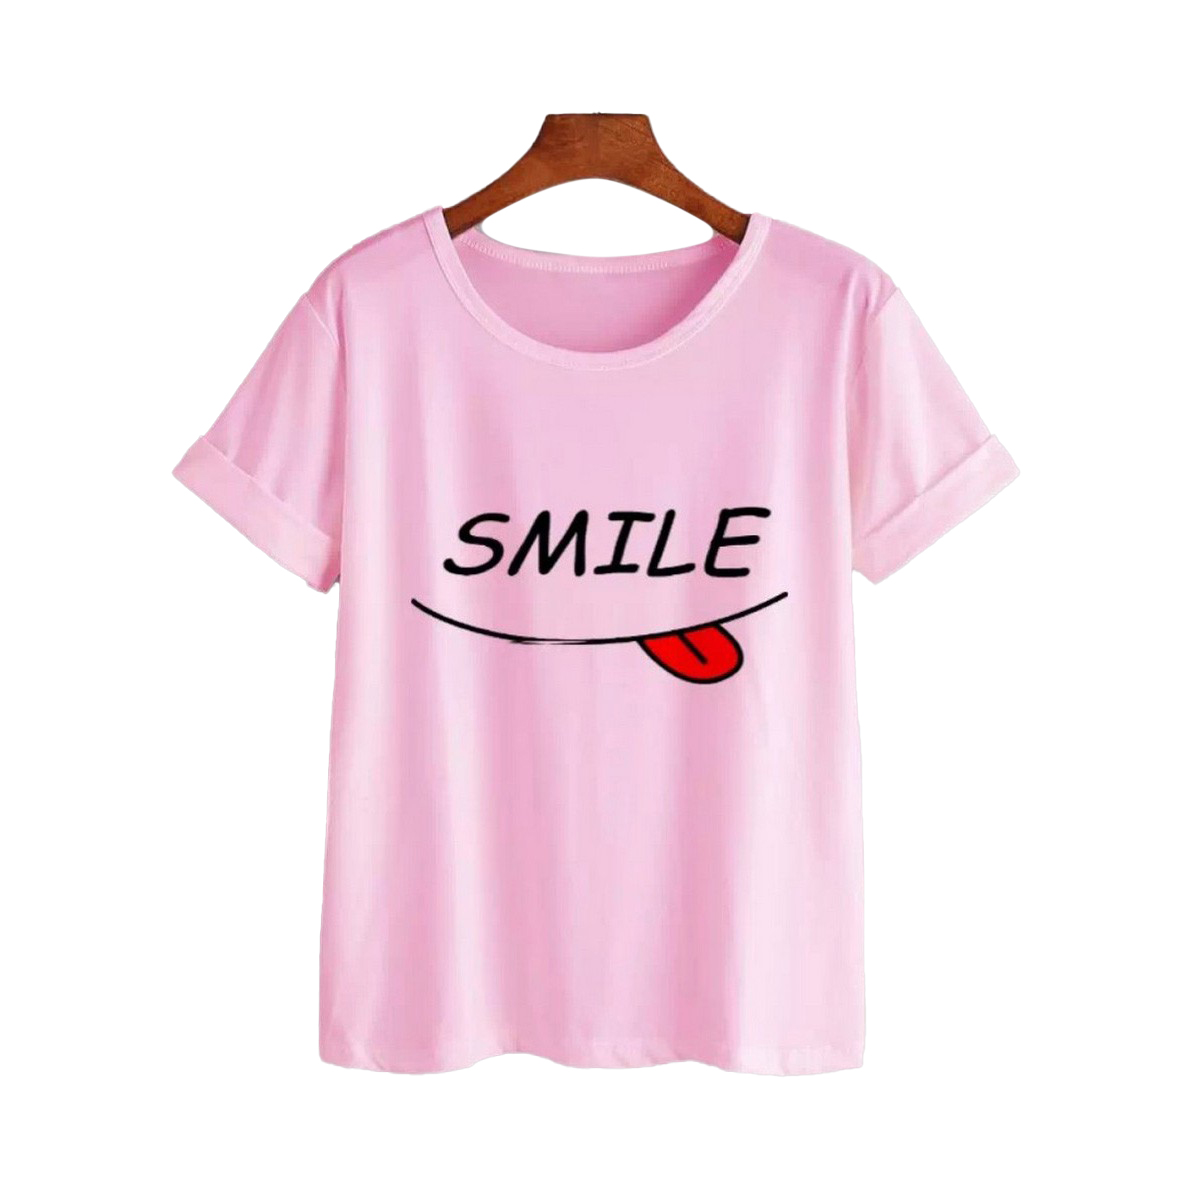 New Summer Smile Printed Round Neck Half Sleeves Casual T shirts For Girls Women and Ladies